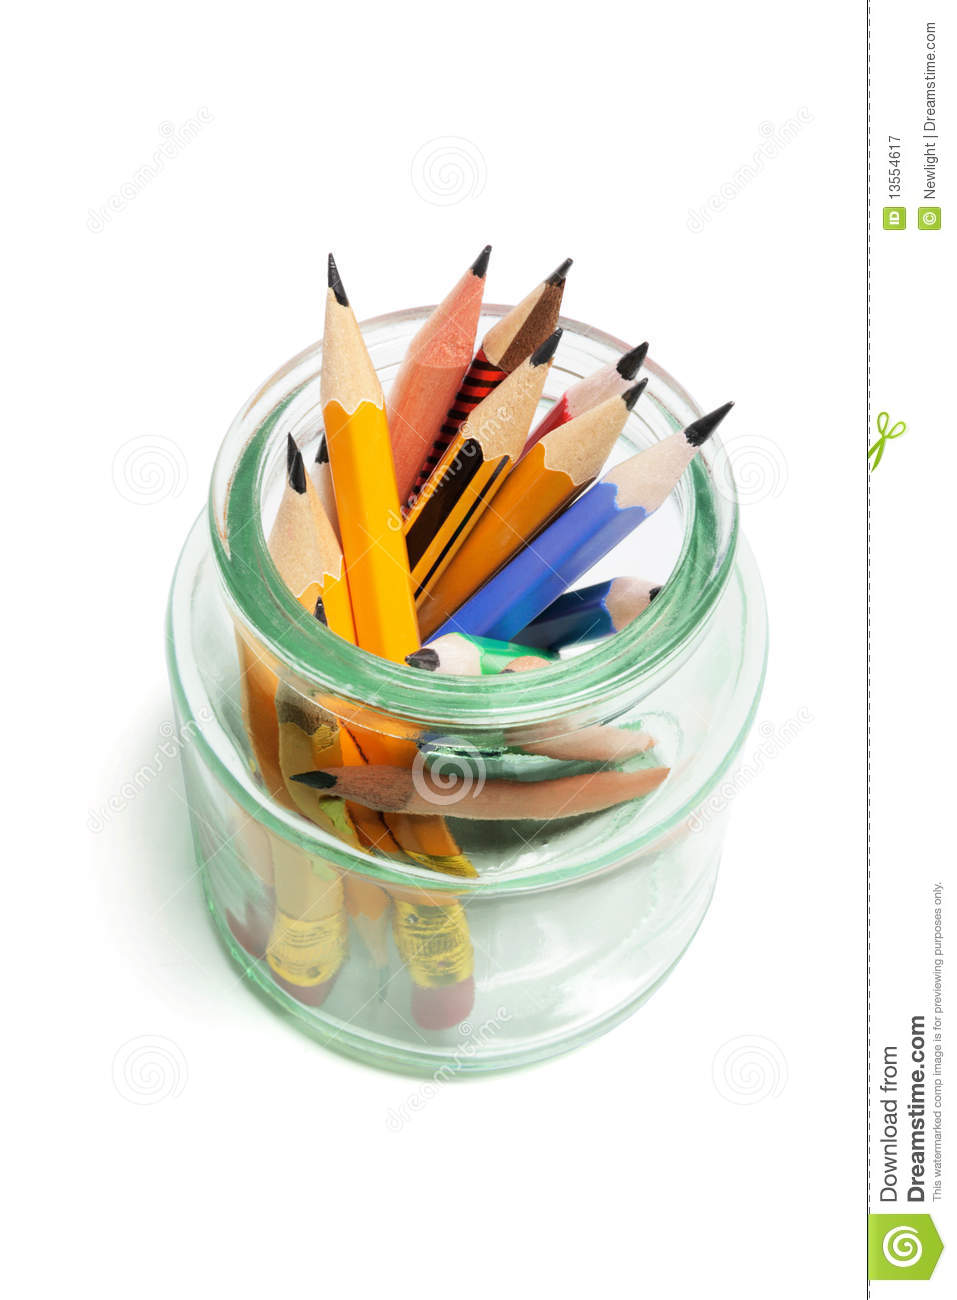 Pencils In Glass Jar Royalty Free Stock Photography ...